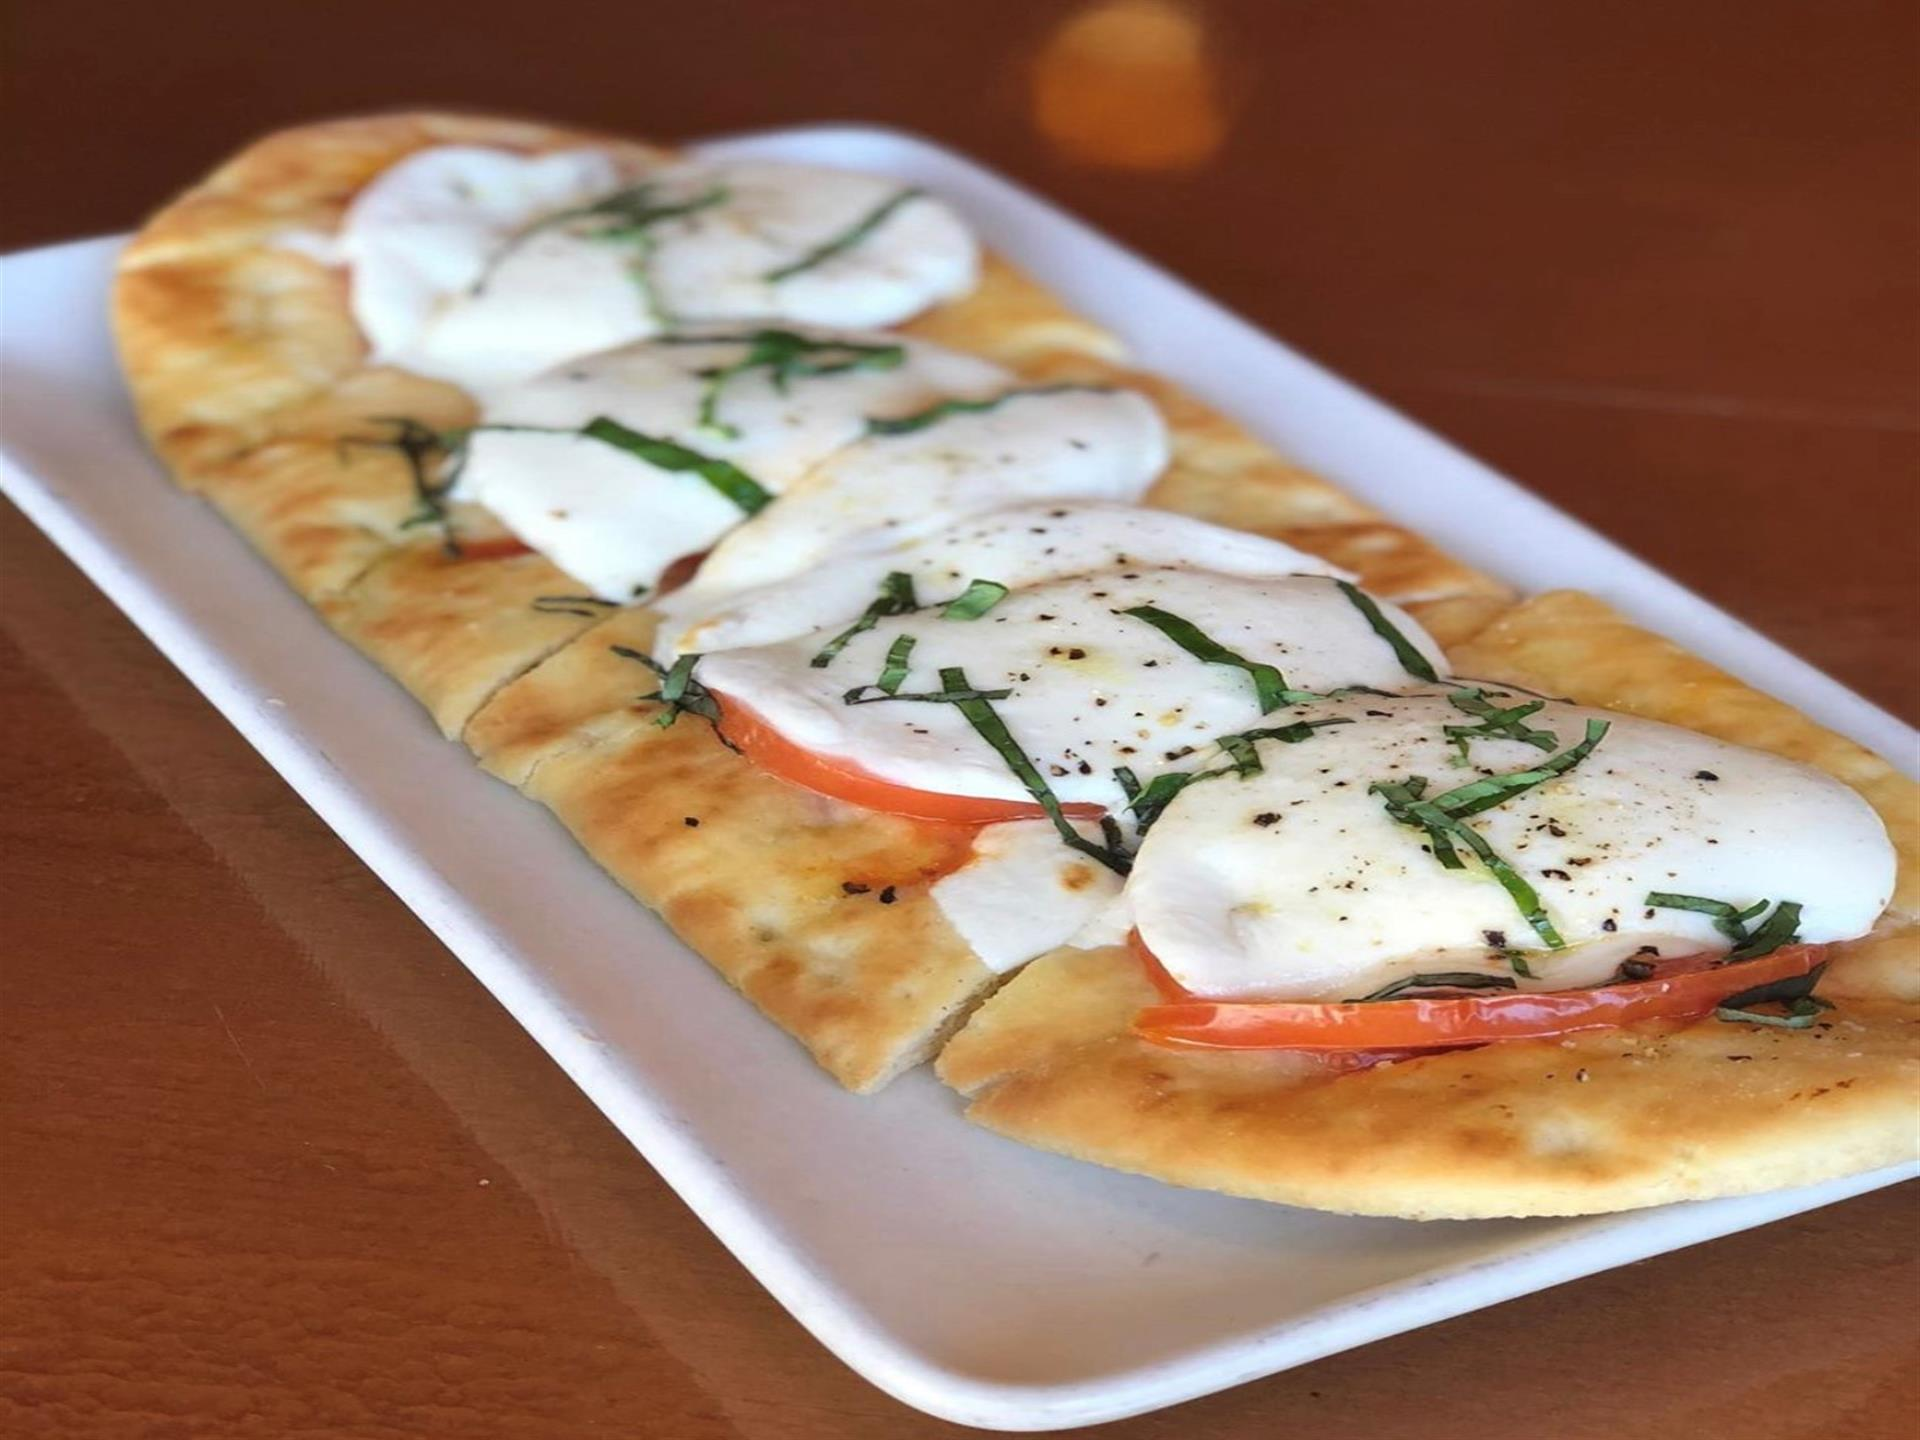 A flatbread with cheese and tomato on it